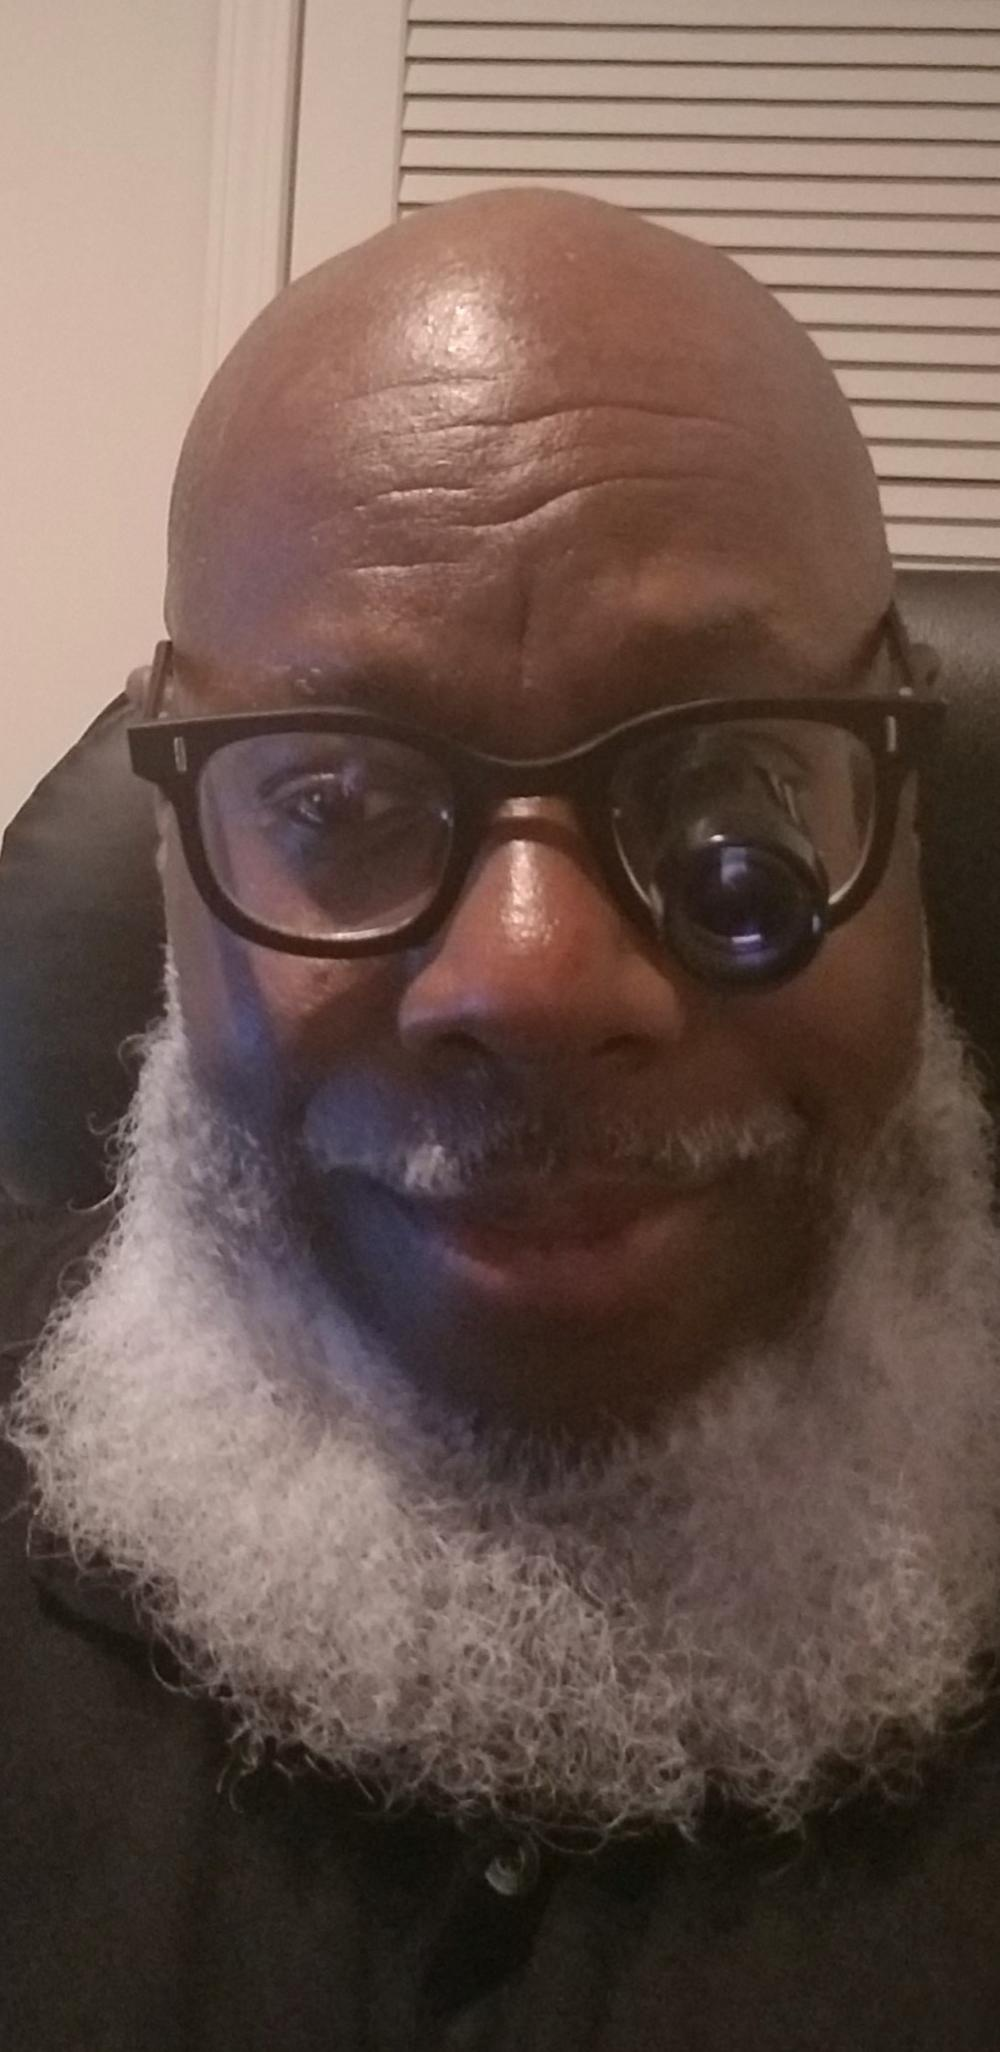 Ken Armstrong wears glasses and has a white beard